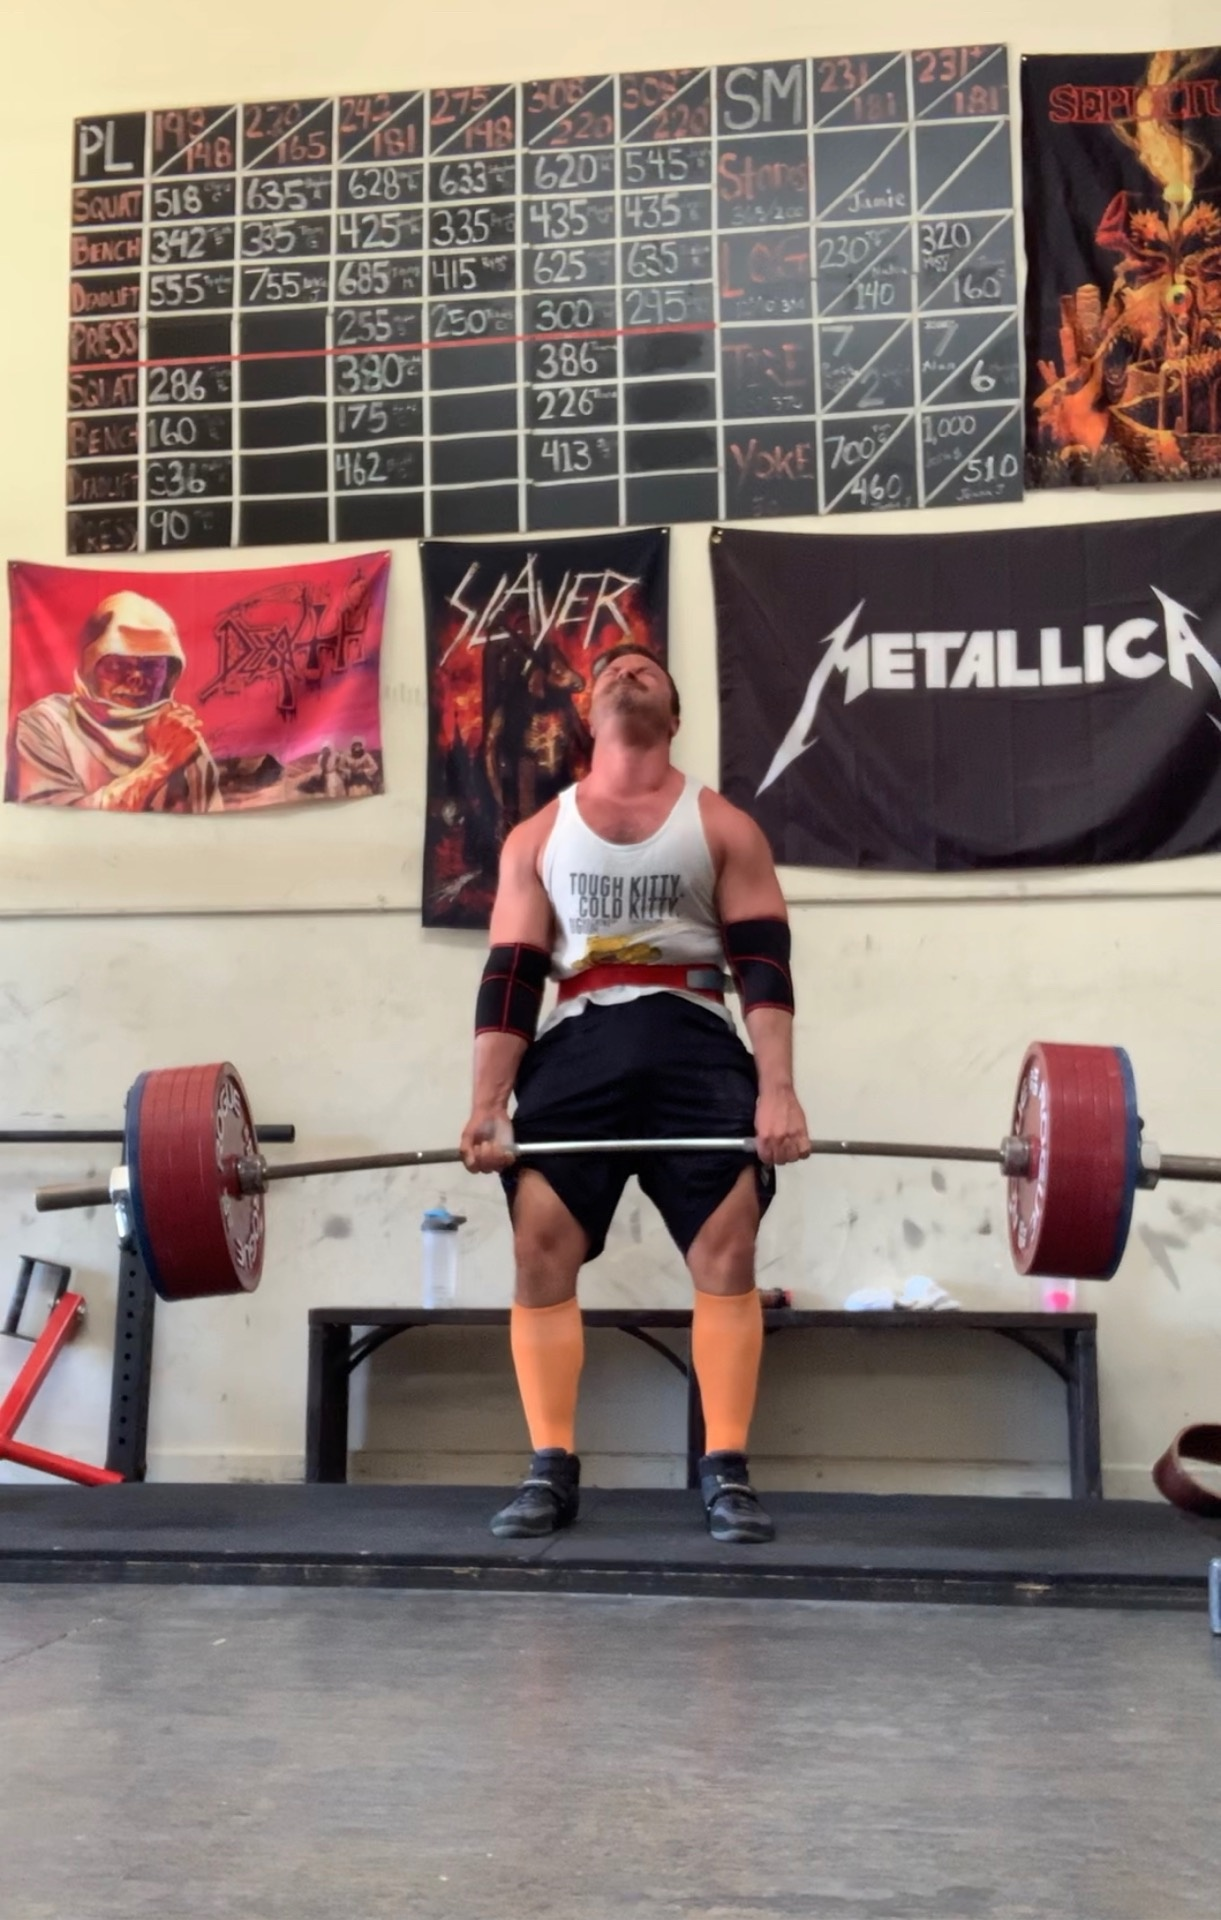 What's more impressive, a 300 lb bench press or a 500 lb deadlift